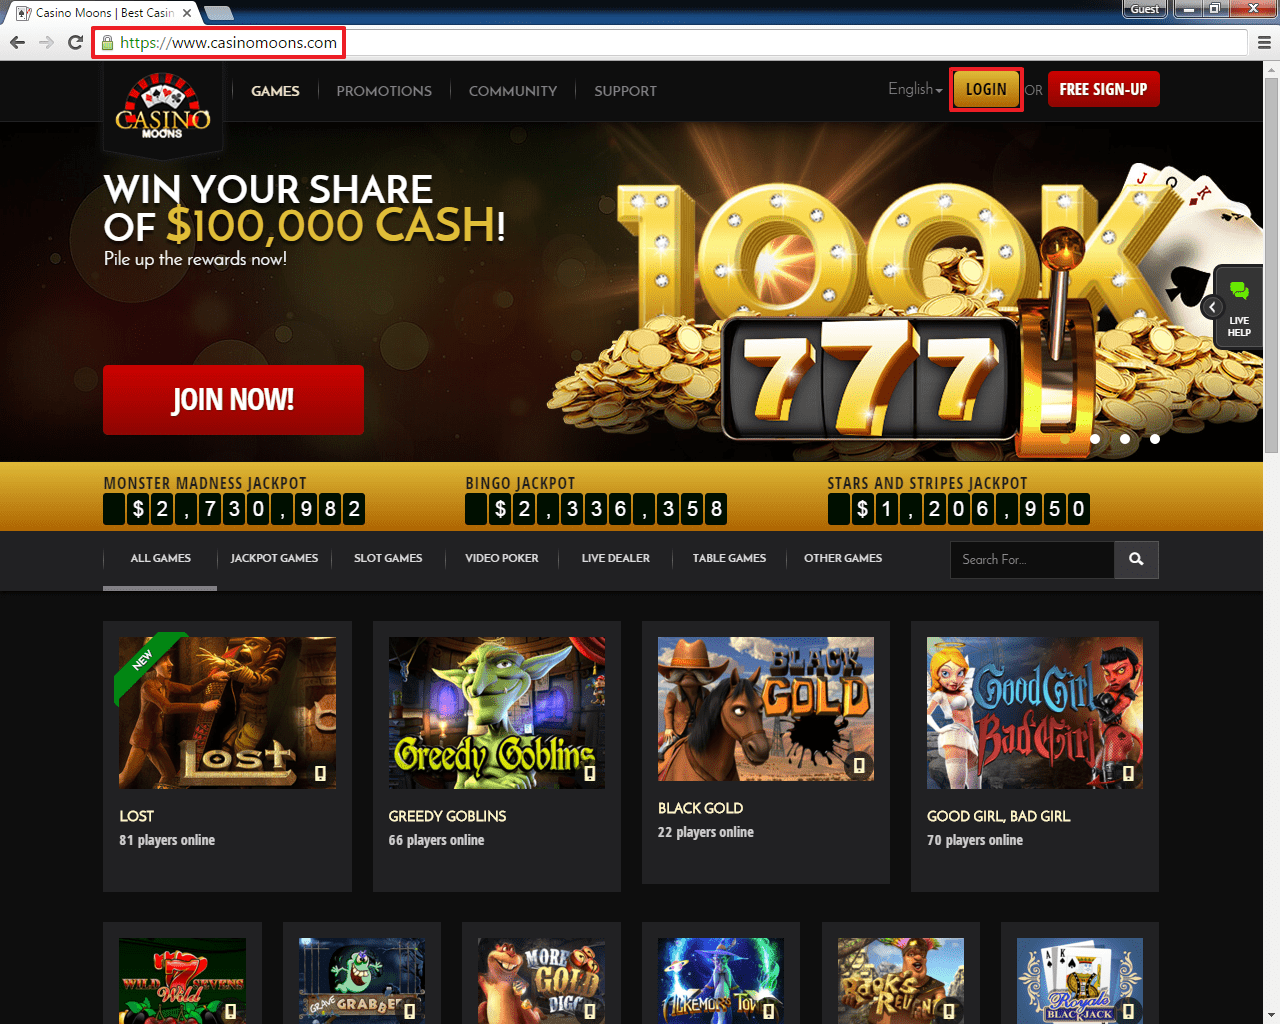 casino moons online casino